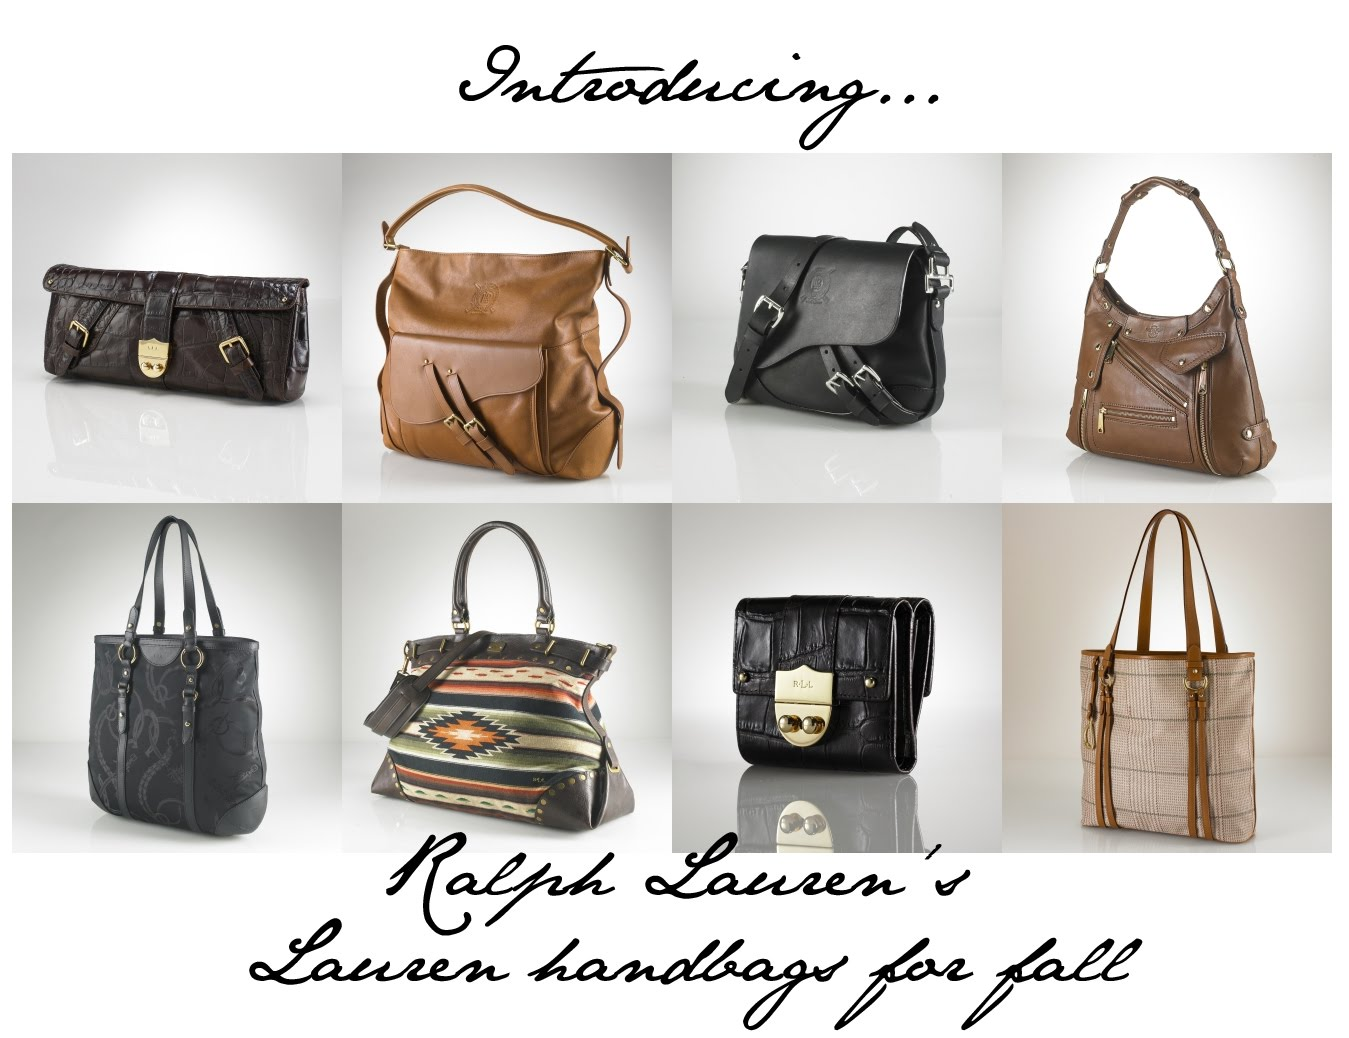 Ralph Lauren give us great new handbags...I give you the ...